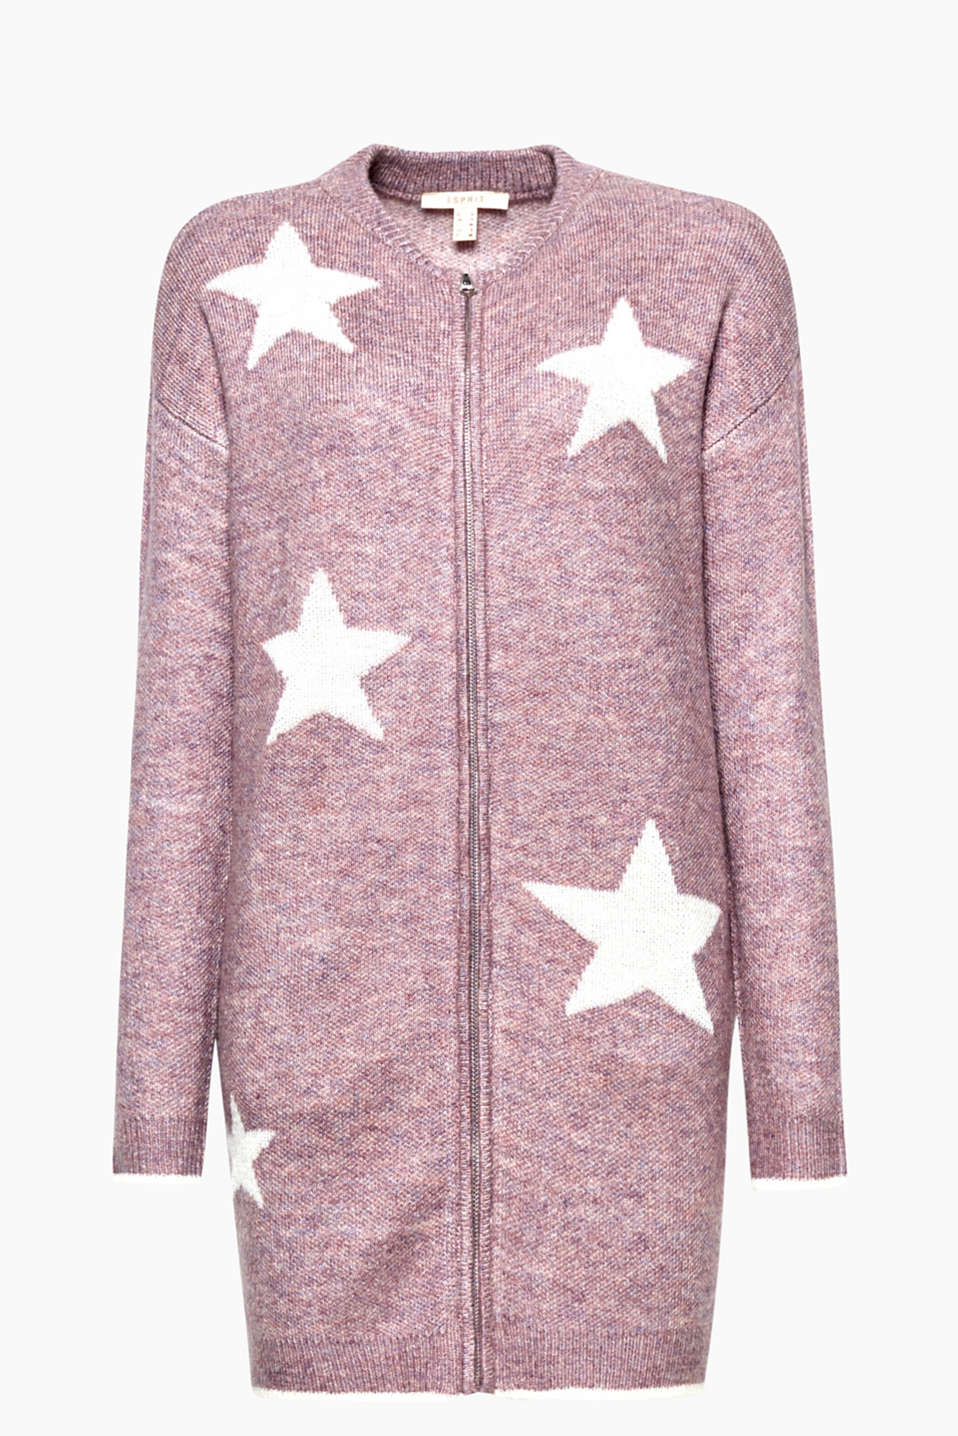 A knitwear star is born - in this long, melange cardigan with an outdoor vibe, front zip and intarsia!